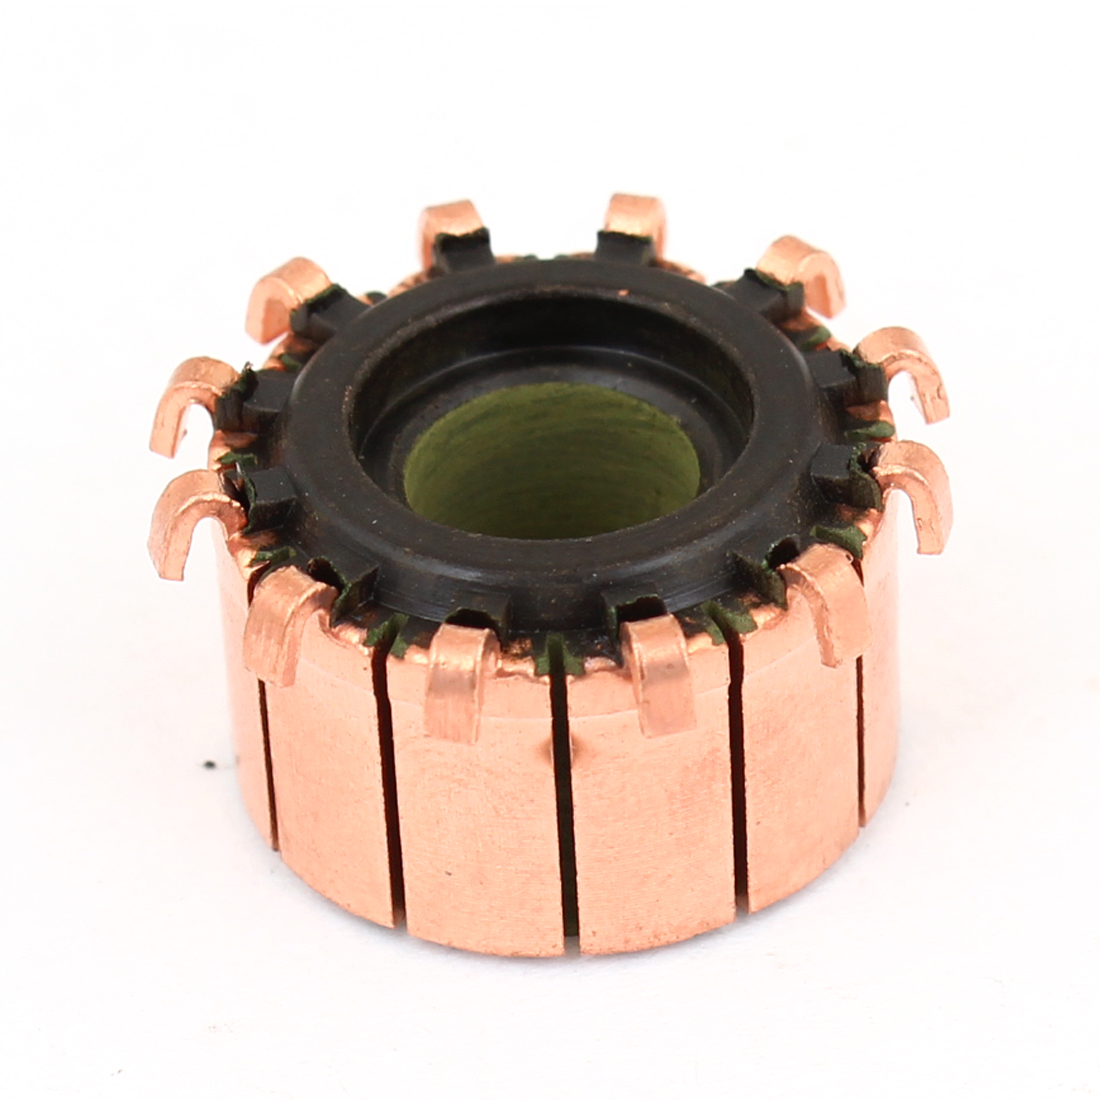 8mm Shaft Dia 18.9mm OD 12 Tooth Copper Shell Electric Motor Commutator